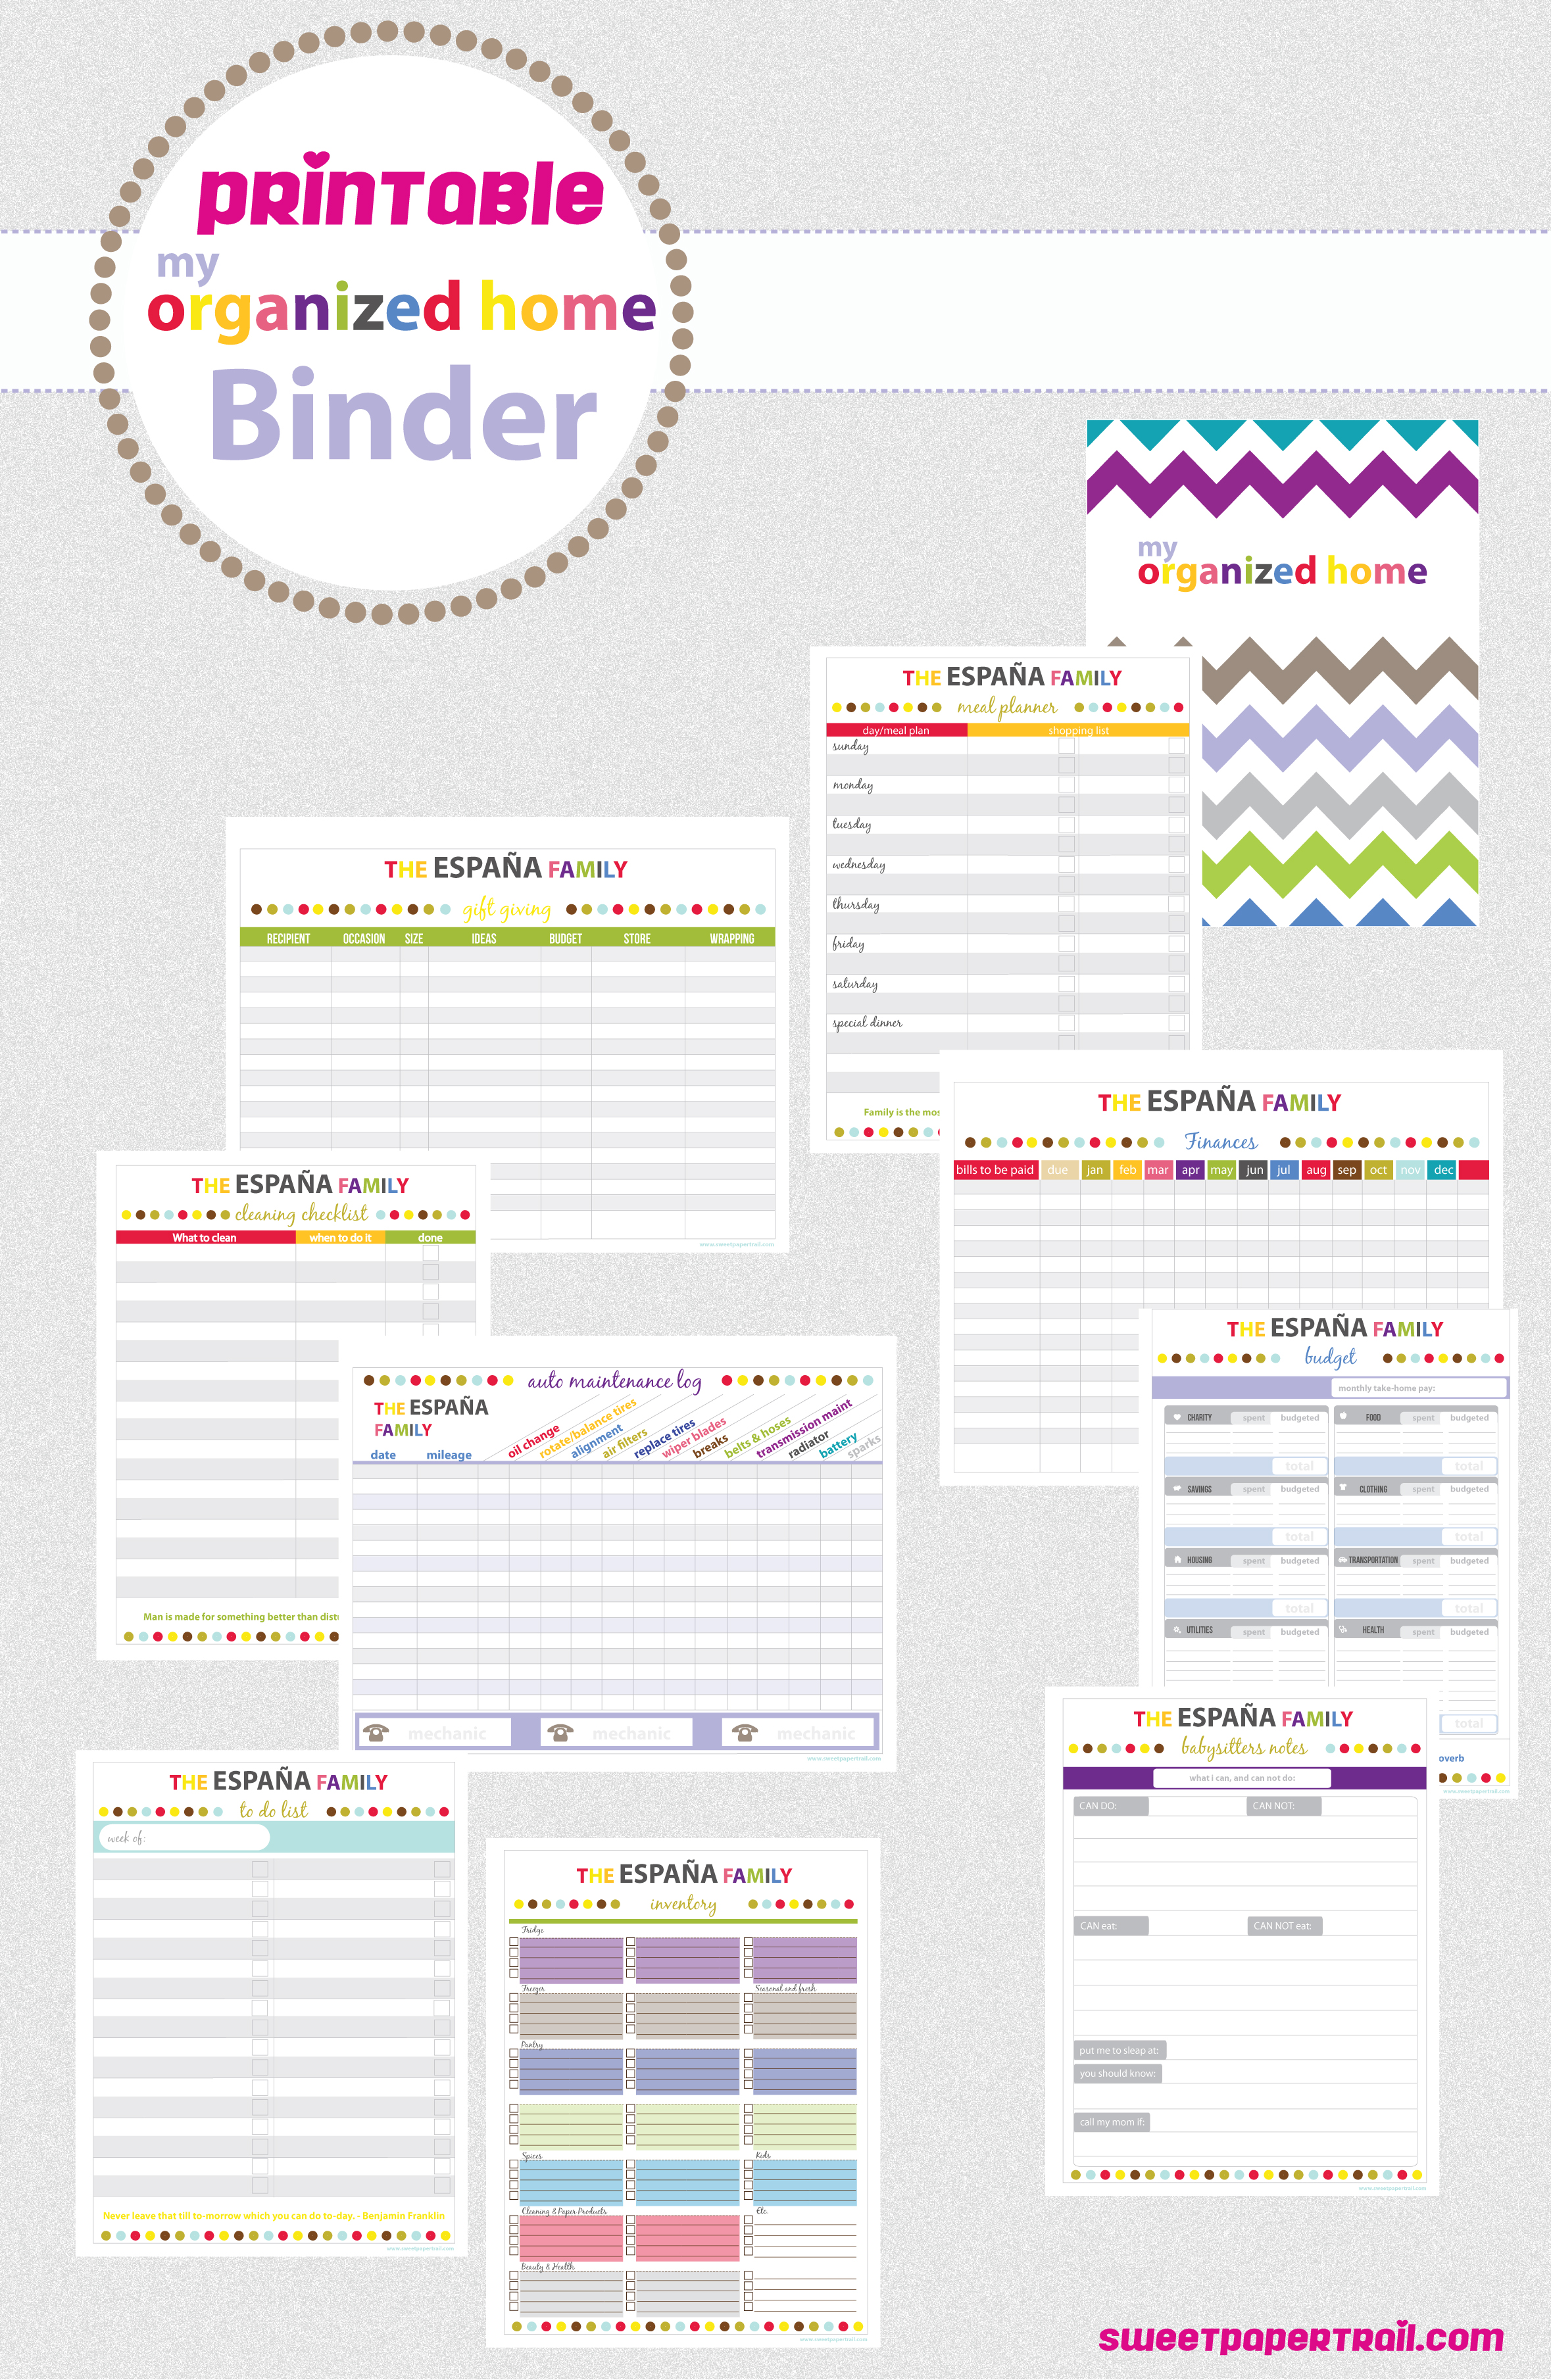 8 Images of Organization Binder Printable Planner Templates